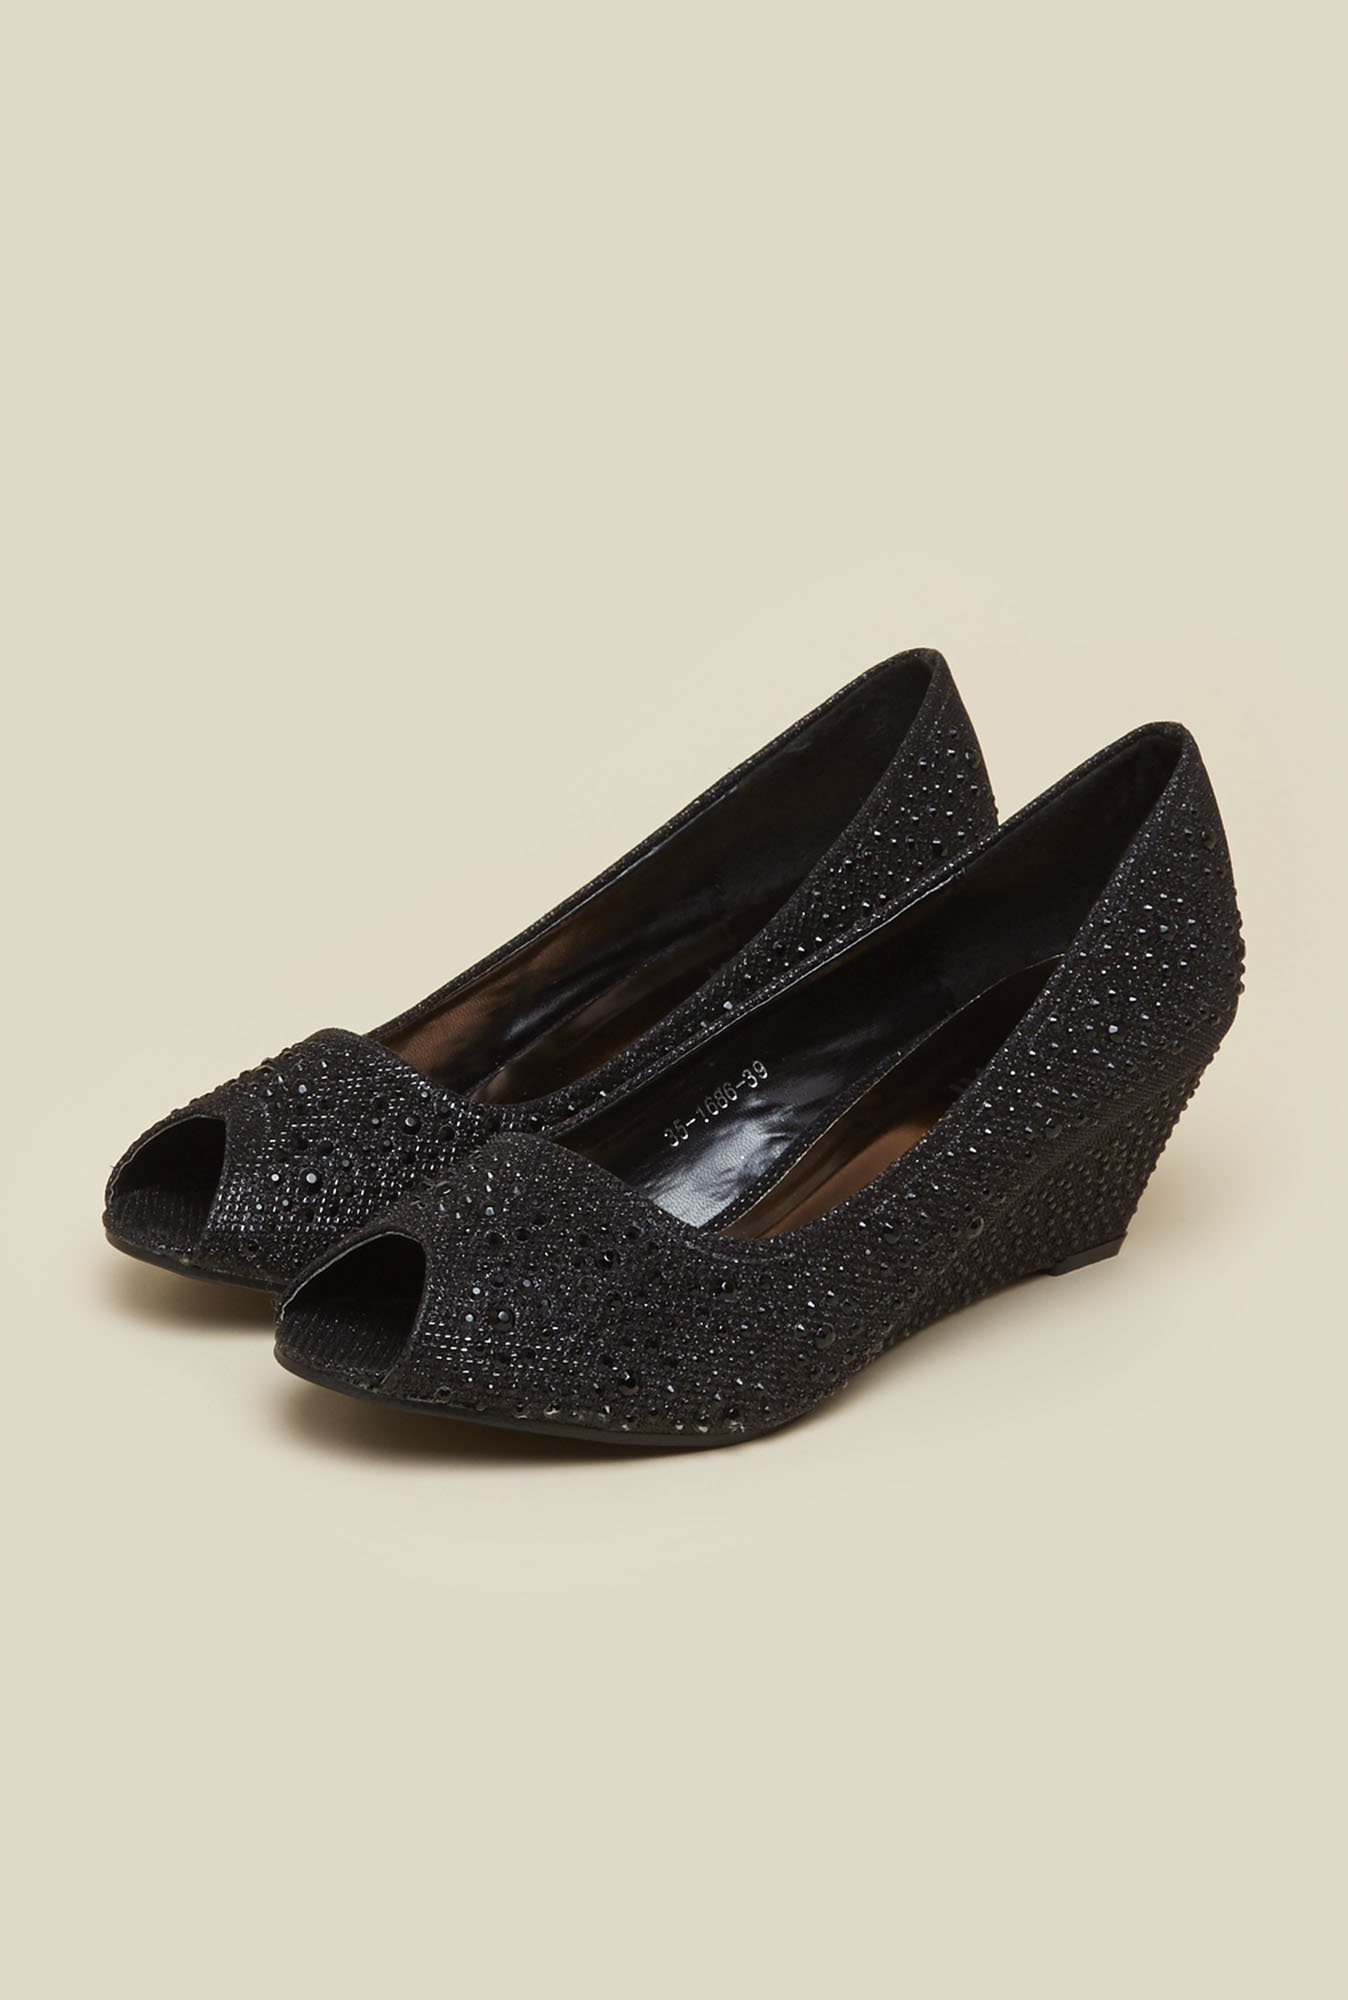 Mochi Black Ethnic Wedges